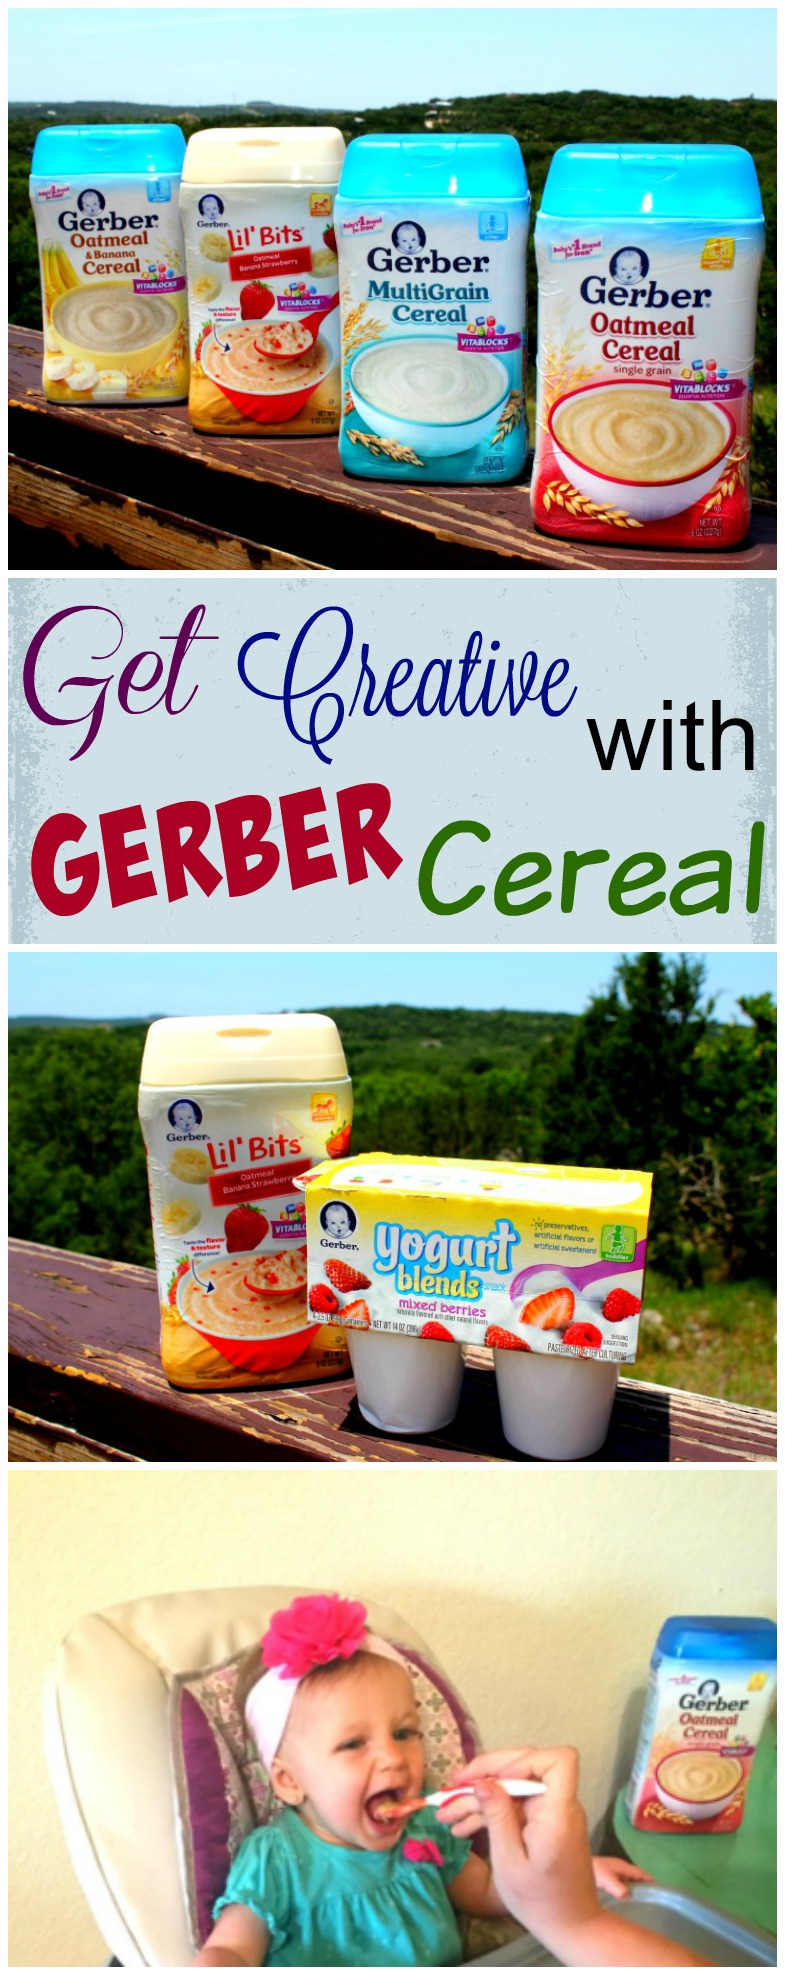 How to Get Creative With Gerber Cereal